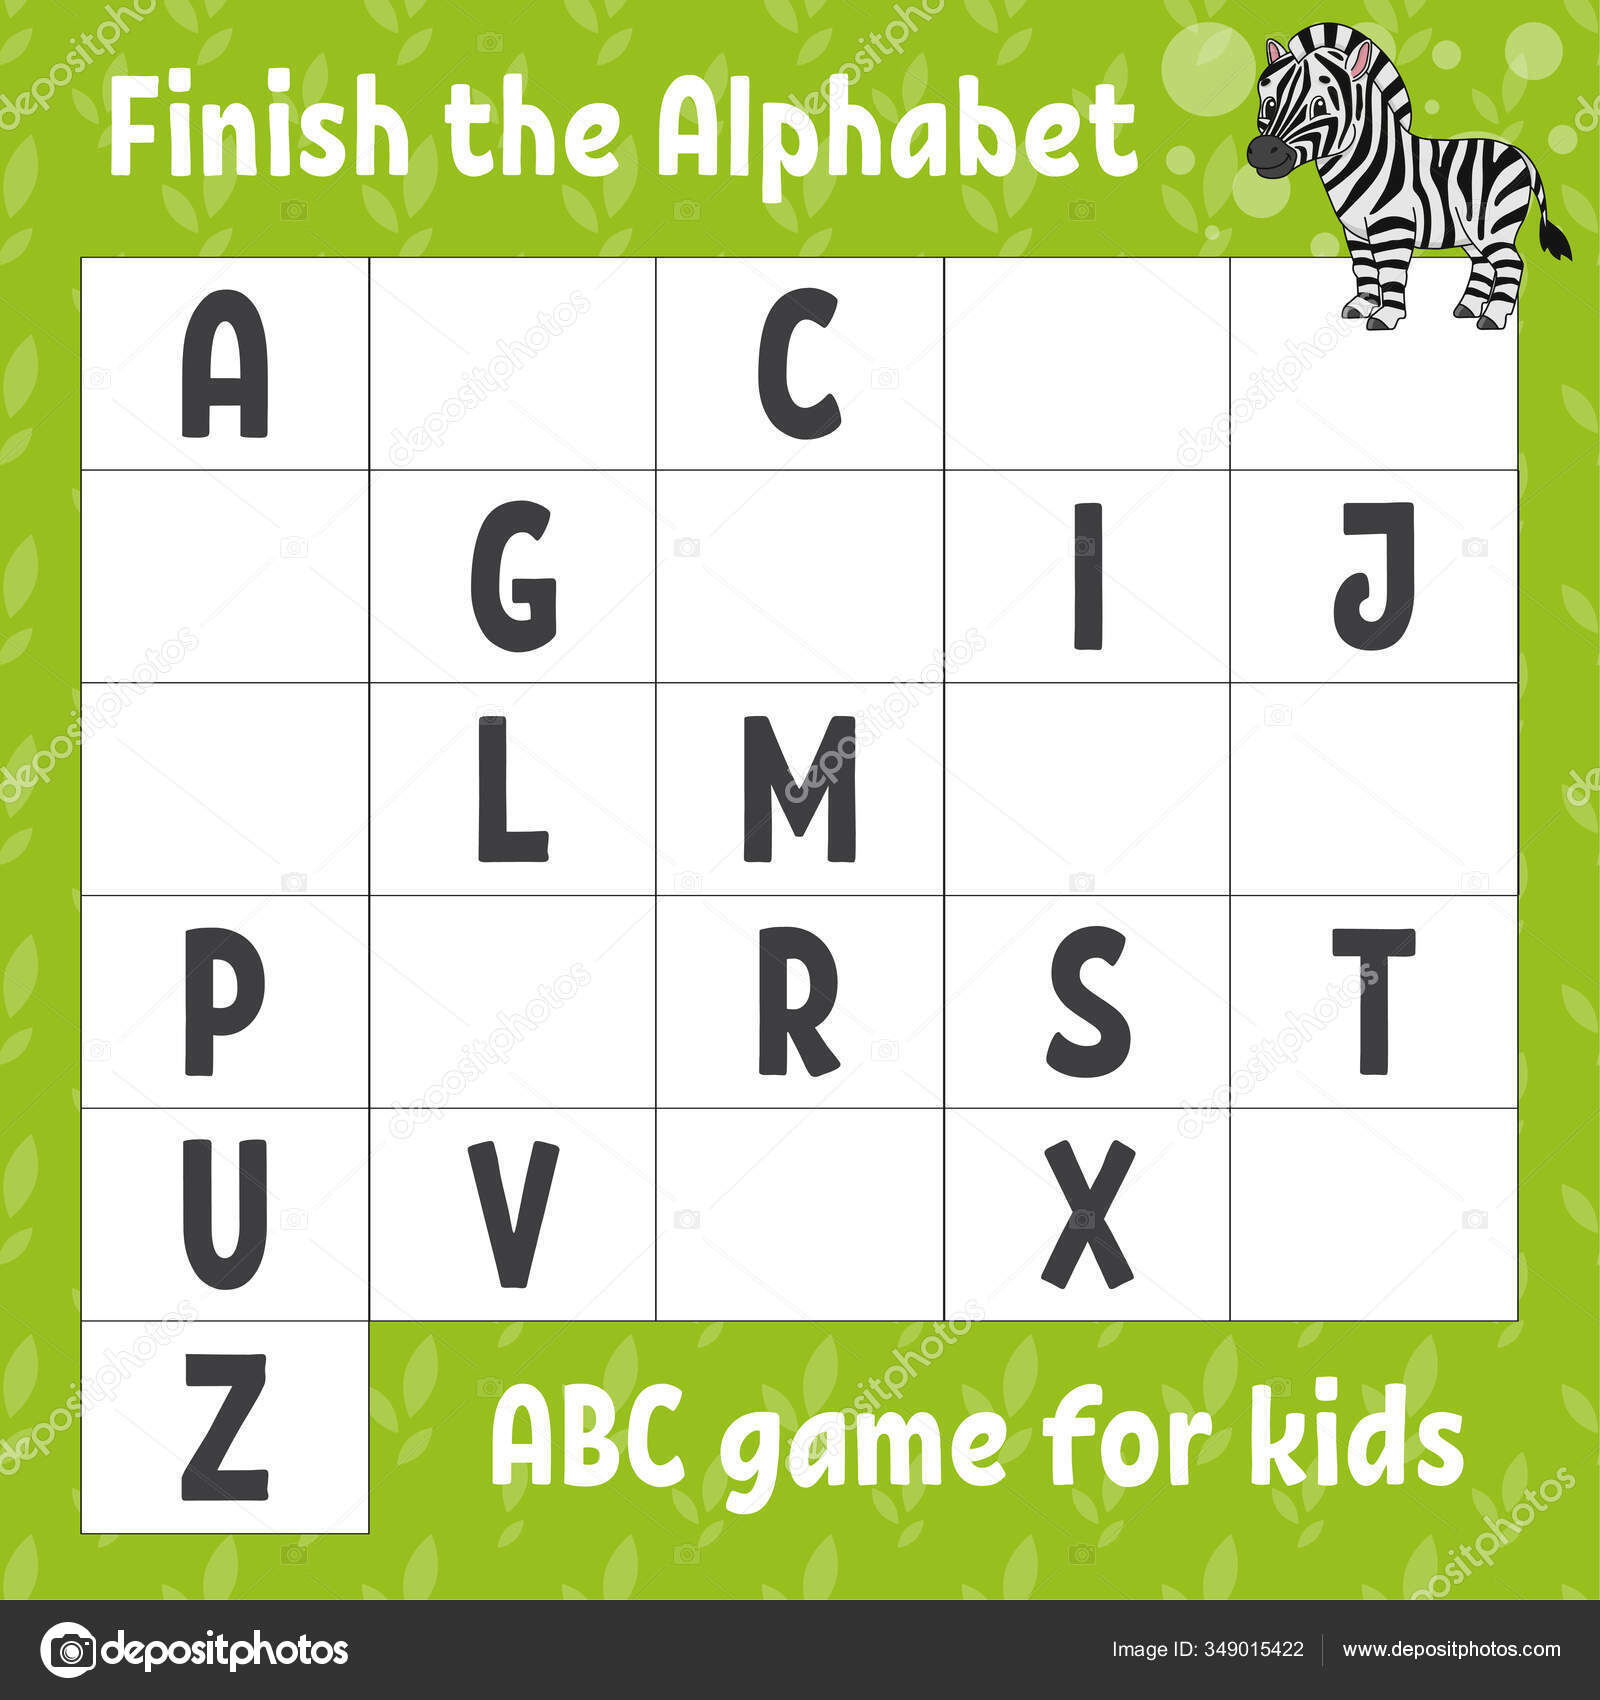 hight resolution of Finish Alphabet Abc Game Kids Education Developing Worksheet Cute Zebra ⬇  Vector Image by © PlatypusMi86   Vector Stock 349015422